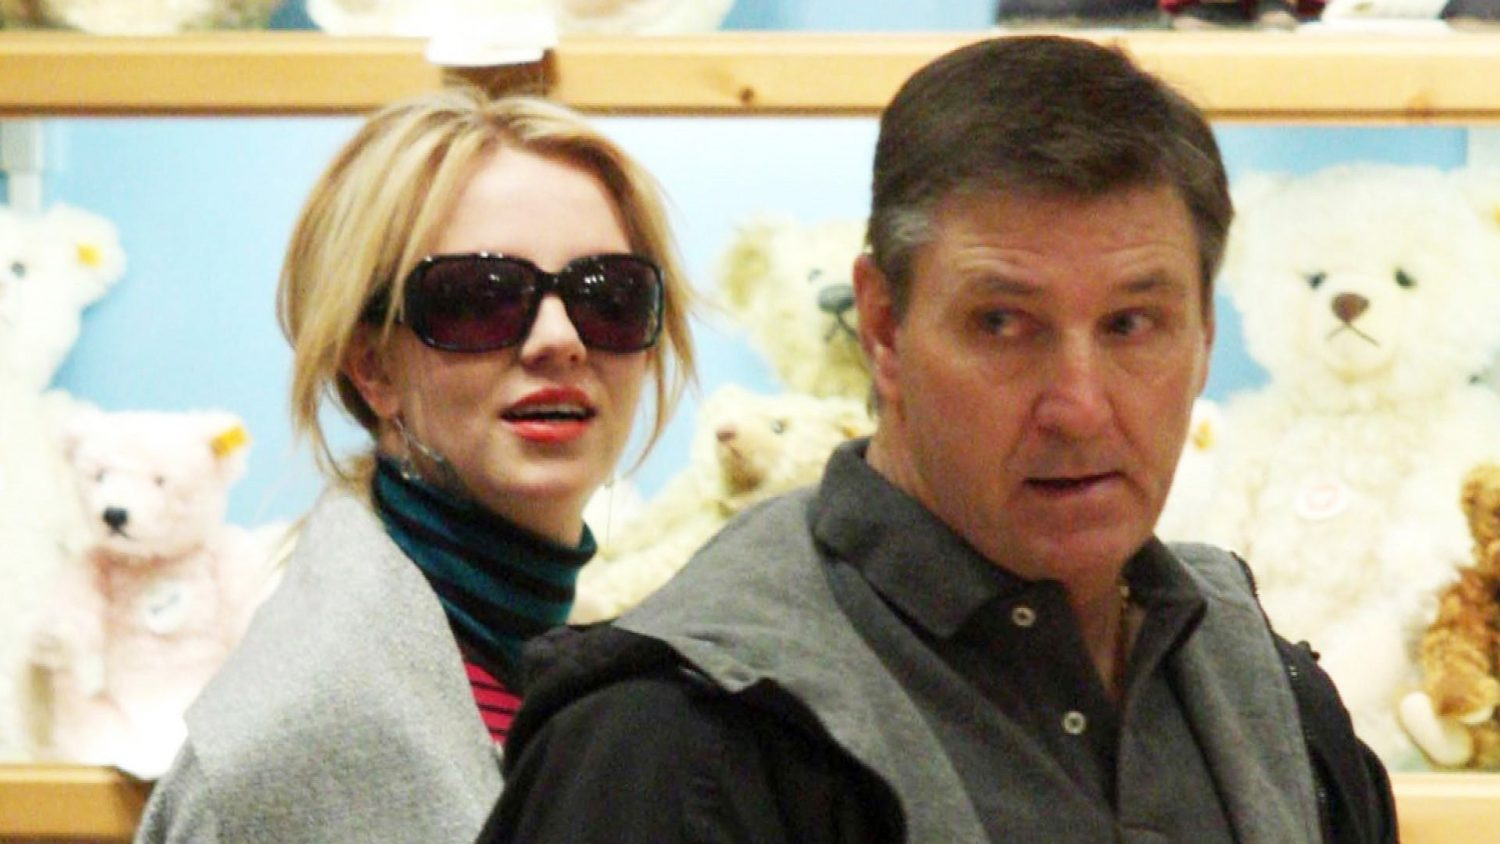 Britney Spears Wants Her Father Removed As Sole Conservator Of Her Estate And Finances